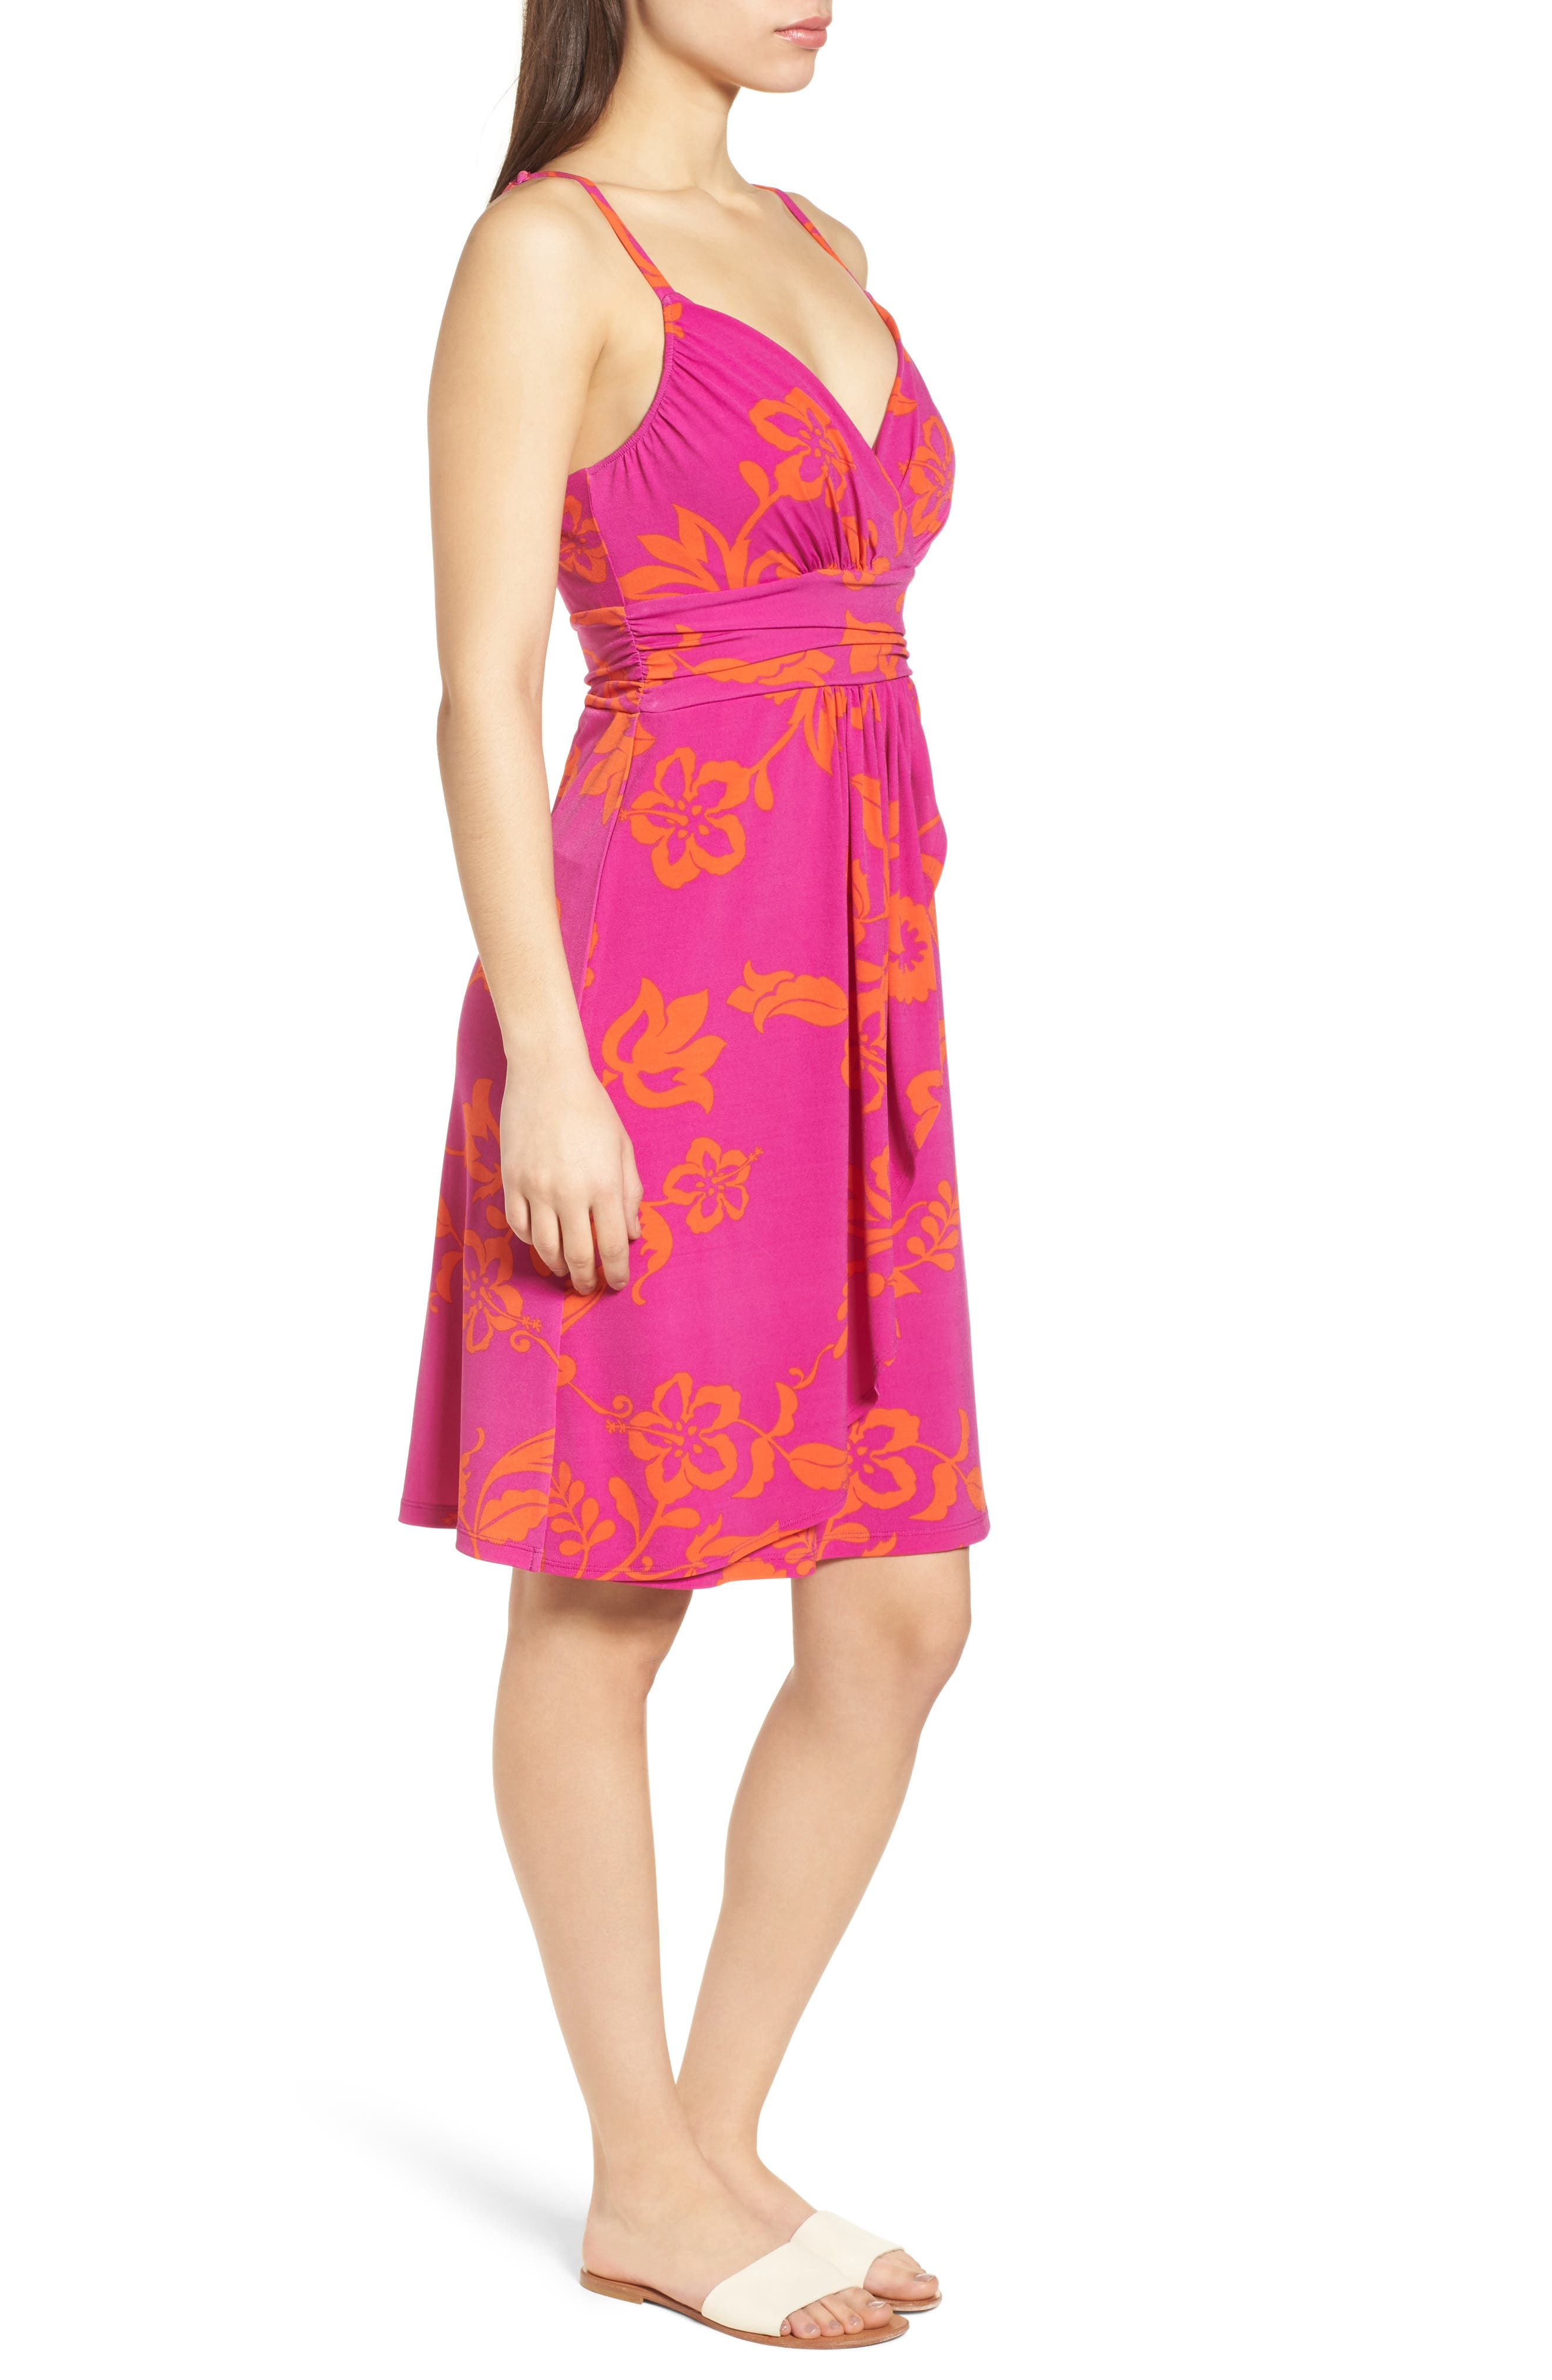 San Lucia Minidress,                             Alternate thumbnail 3, color,                             Festival Pink